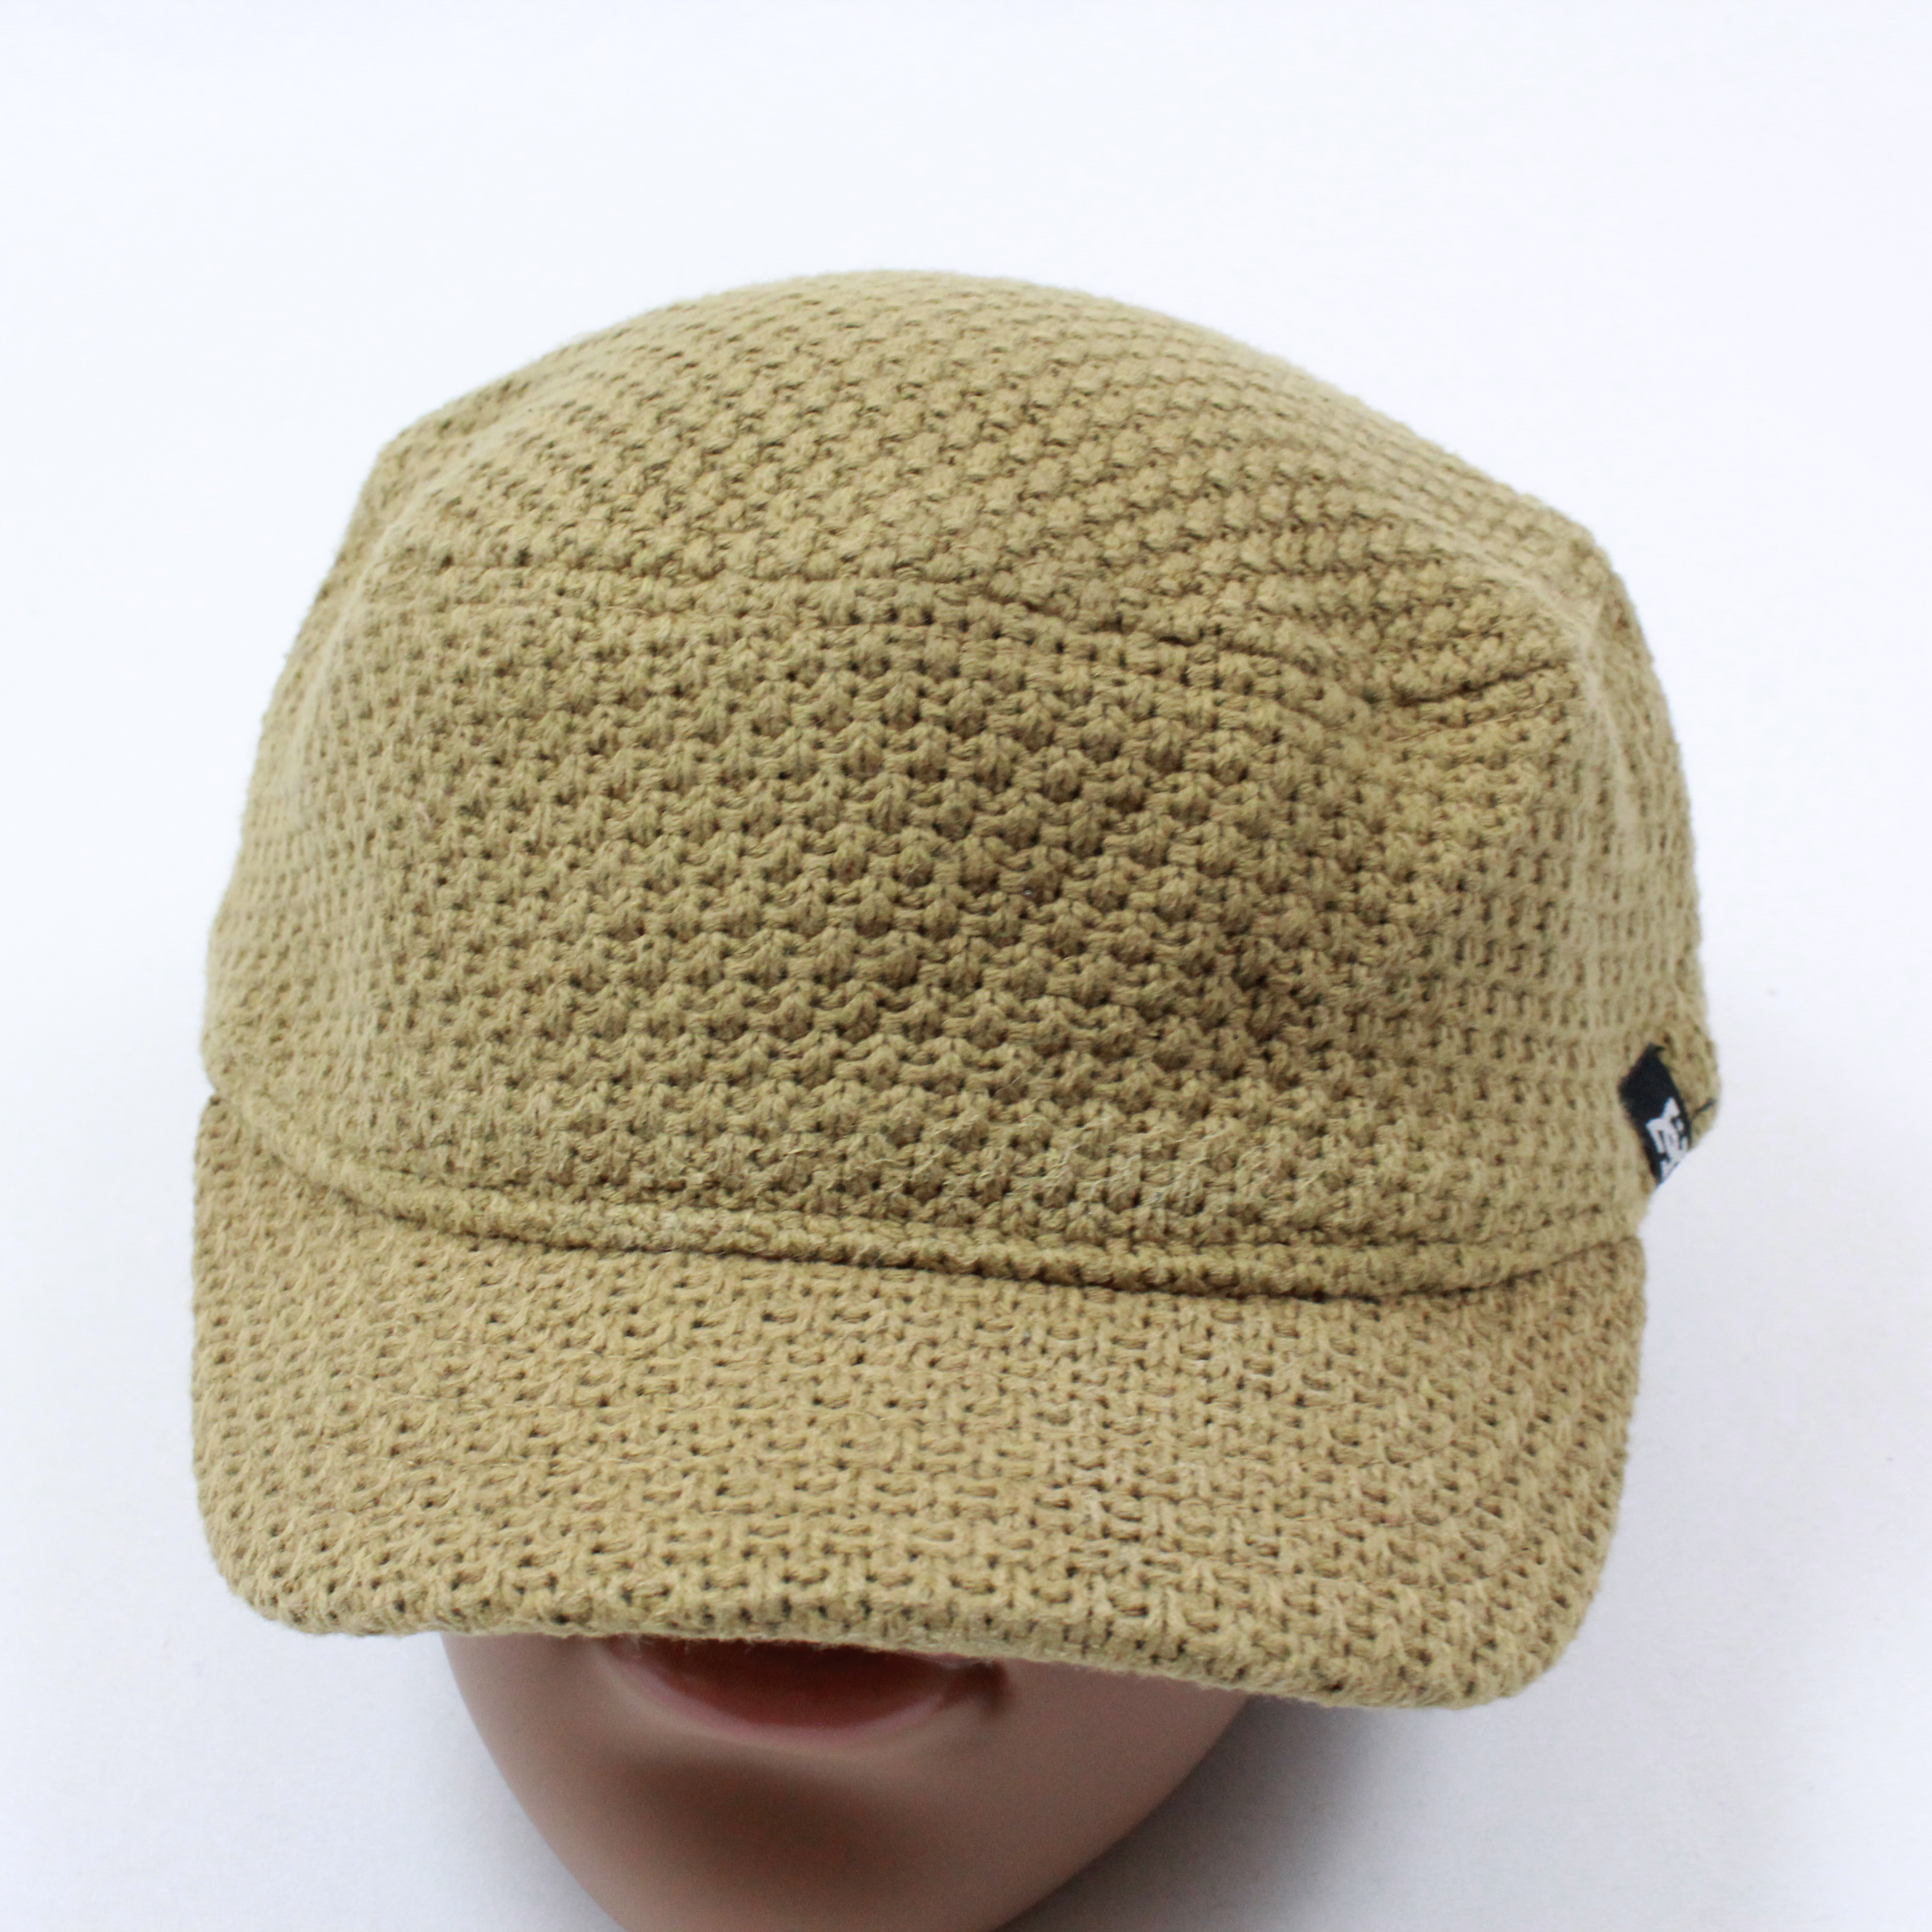 d6e88f1a4b3d1 Vintage × Dc × Street Wear. 90 s DC Army Cap Style Hat Camel Crotchet Ball  Cap Round Stretch Fit Adult S   M. Size  ONE SIZE